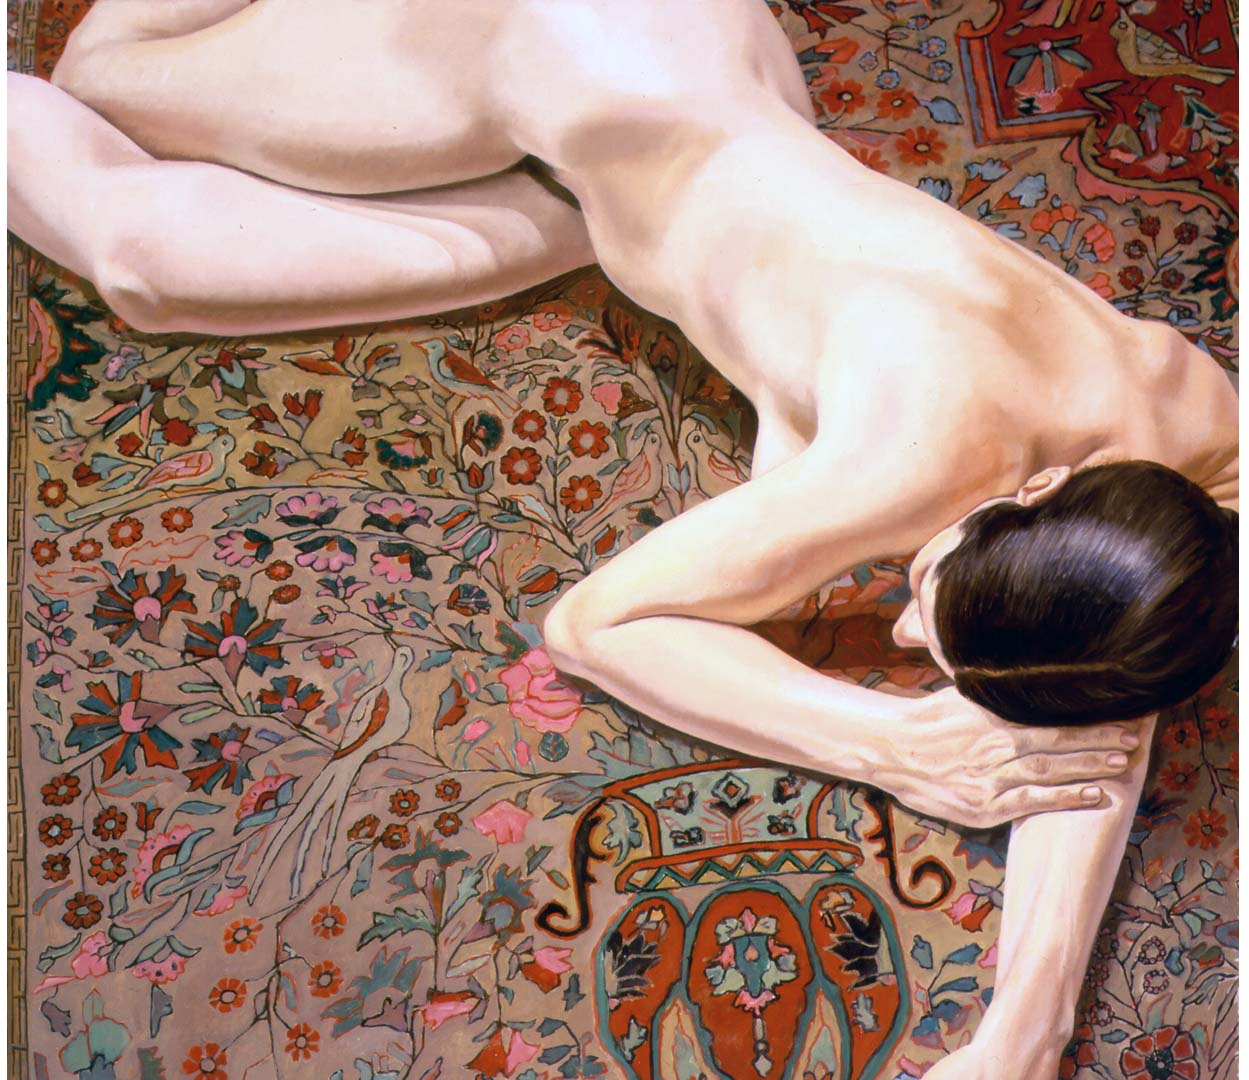 "1972 Female Nude on Persian Rug Oil on Canvas 42"" x 48"""